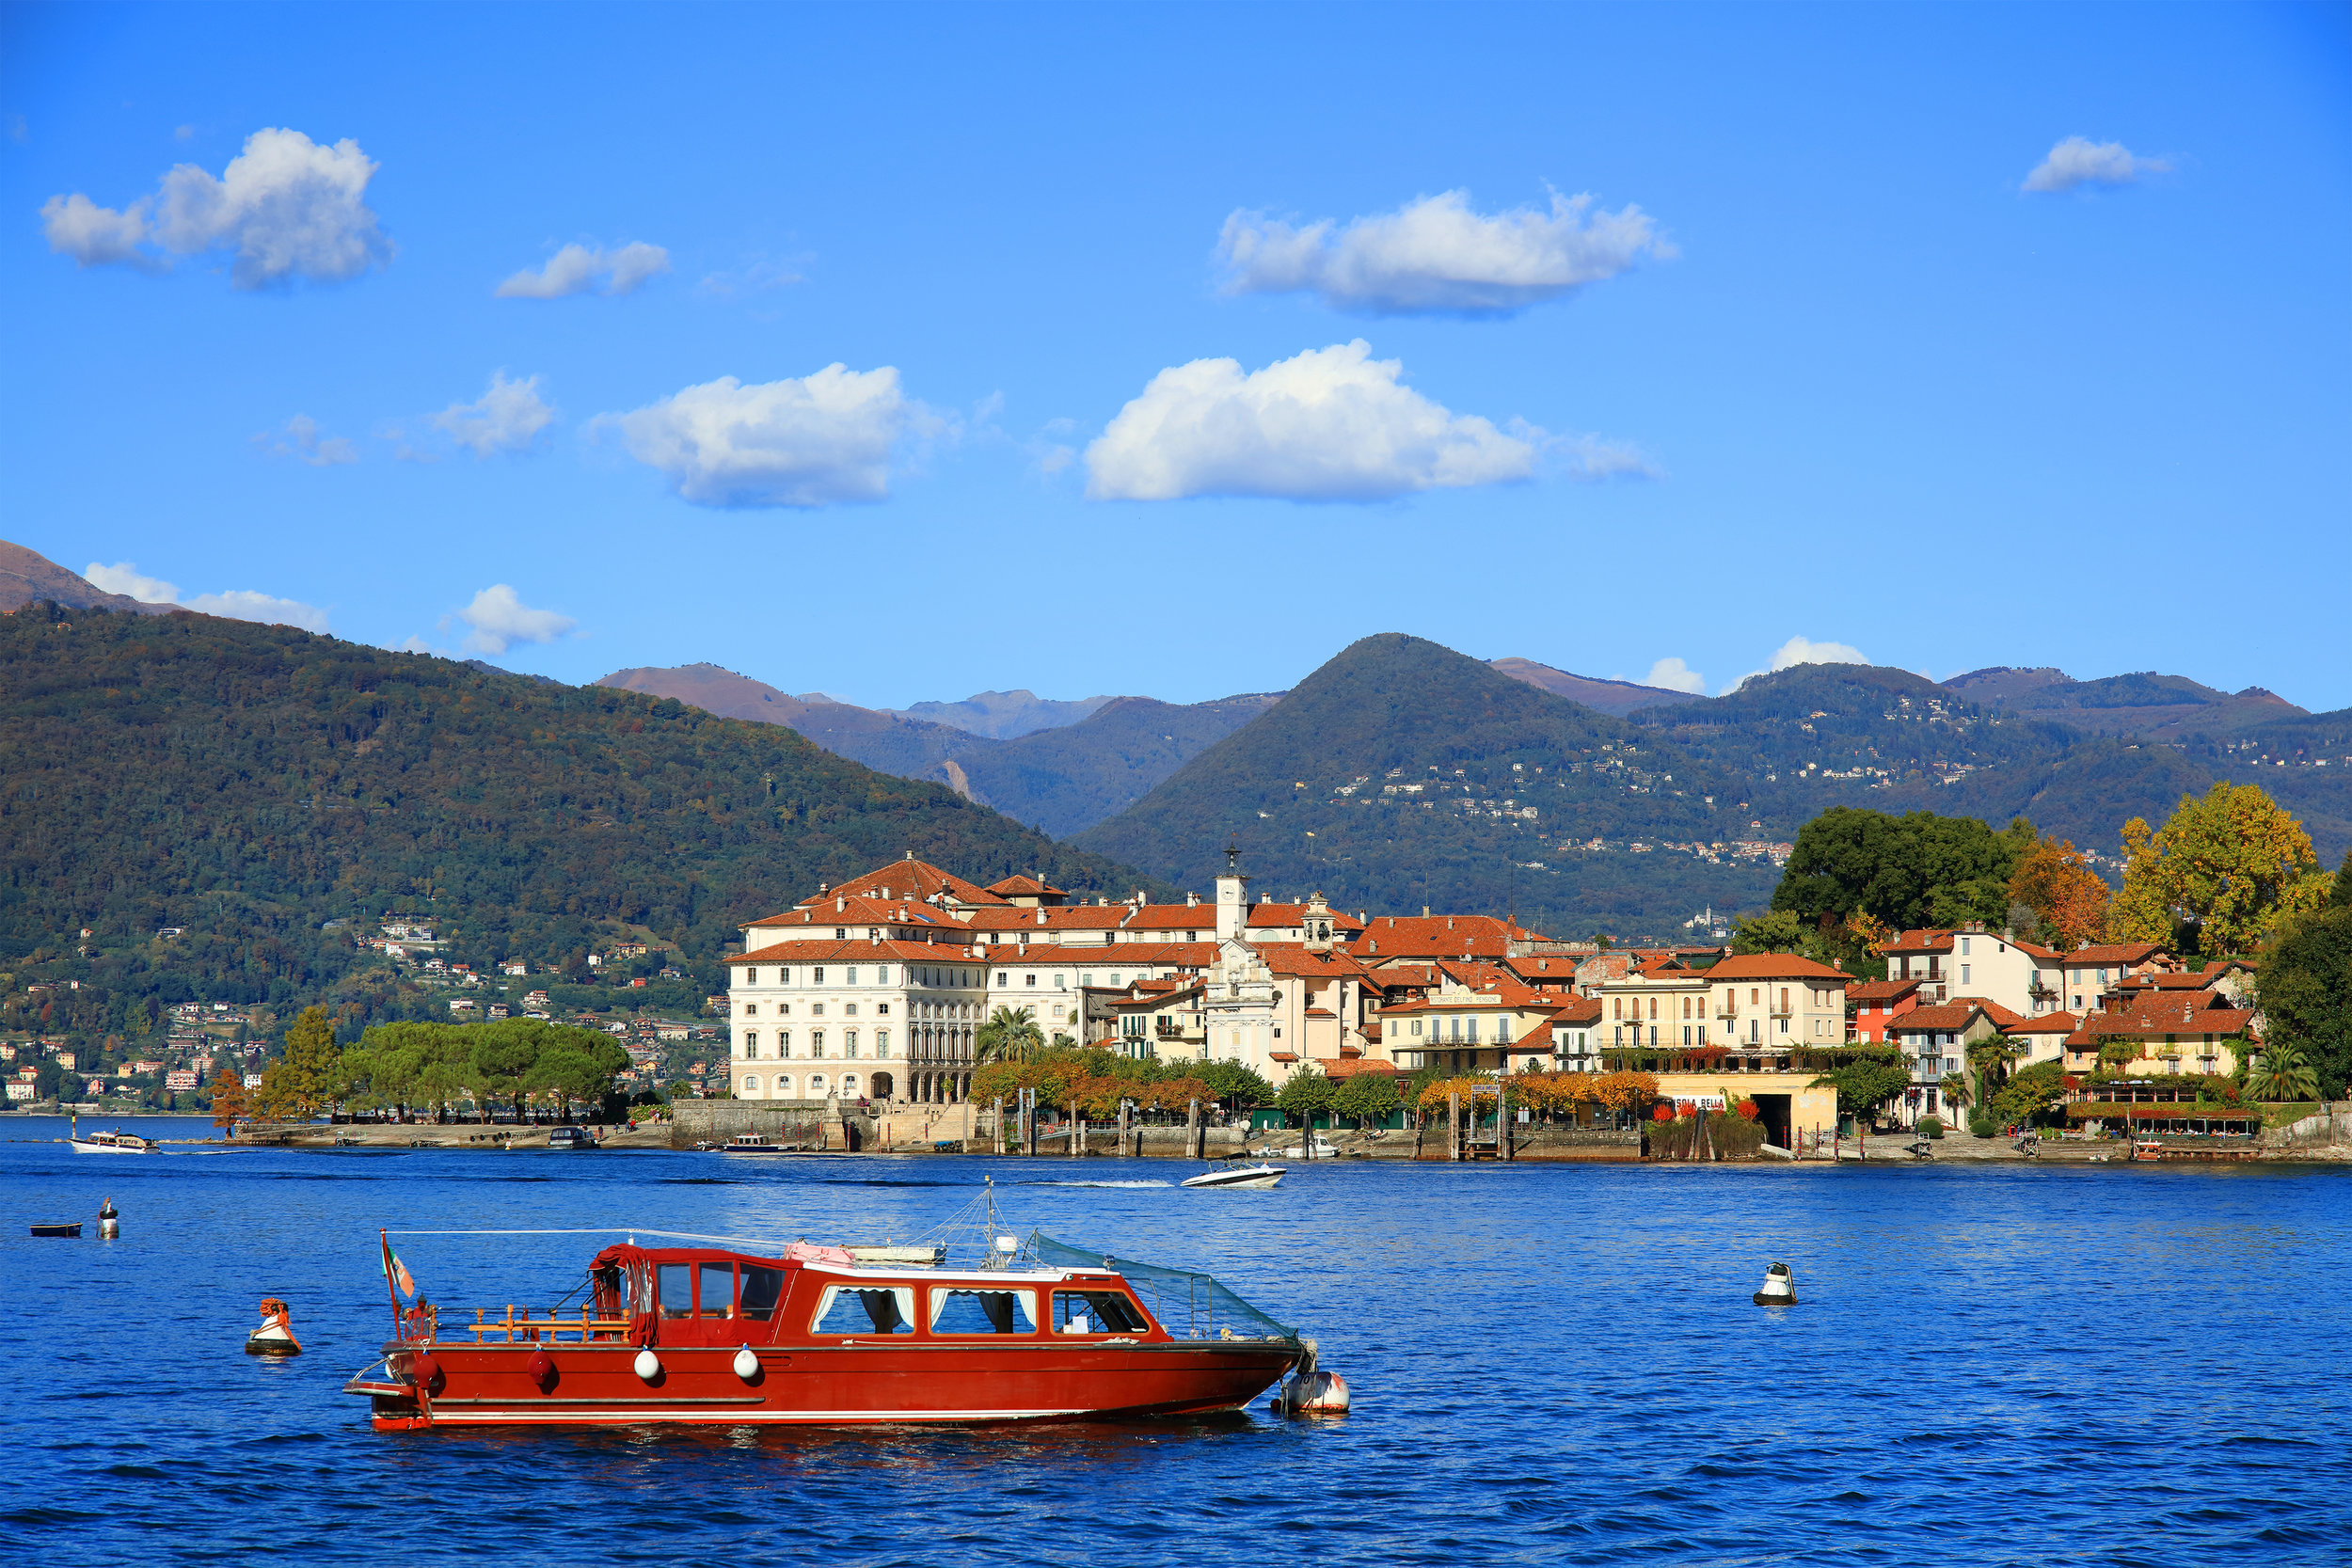 italy_piedmont_bigstock-Scenic-view-of-the-Isola-Bella-156903740.jpg